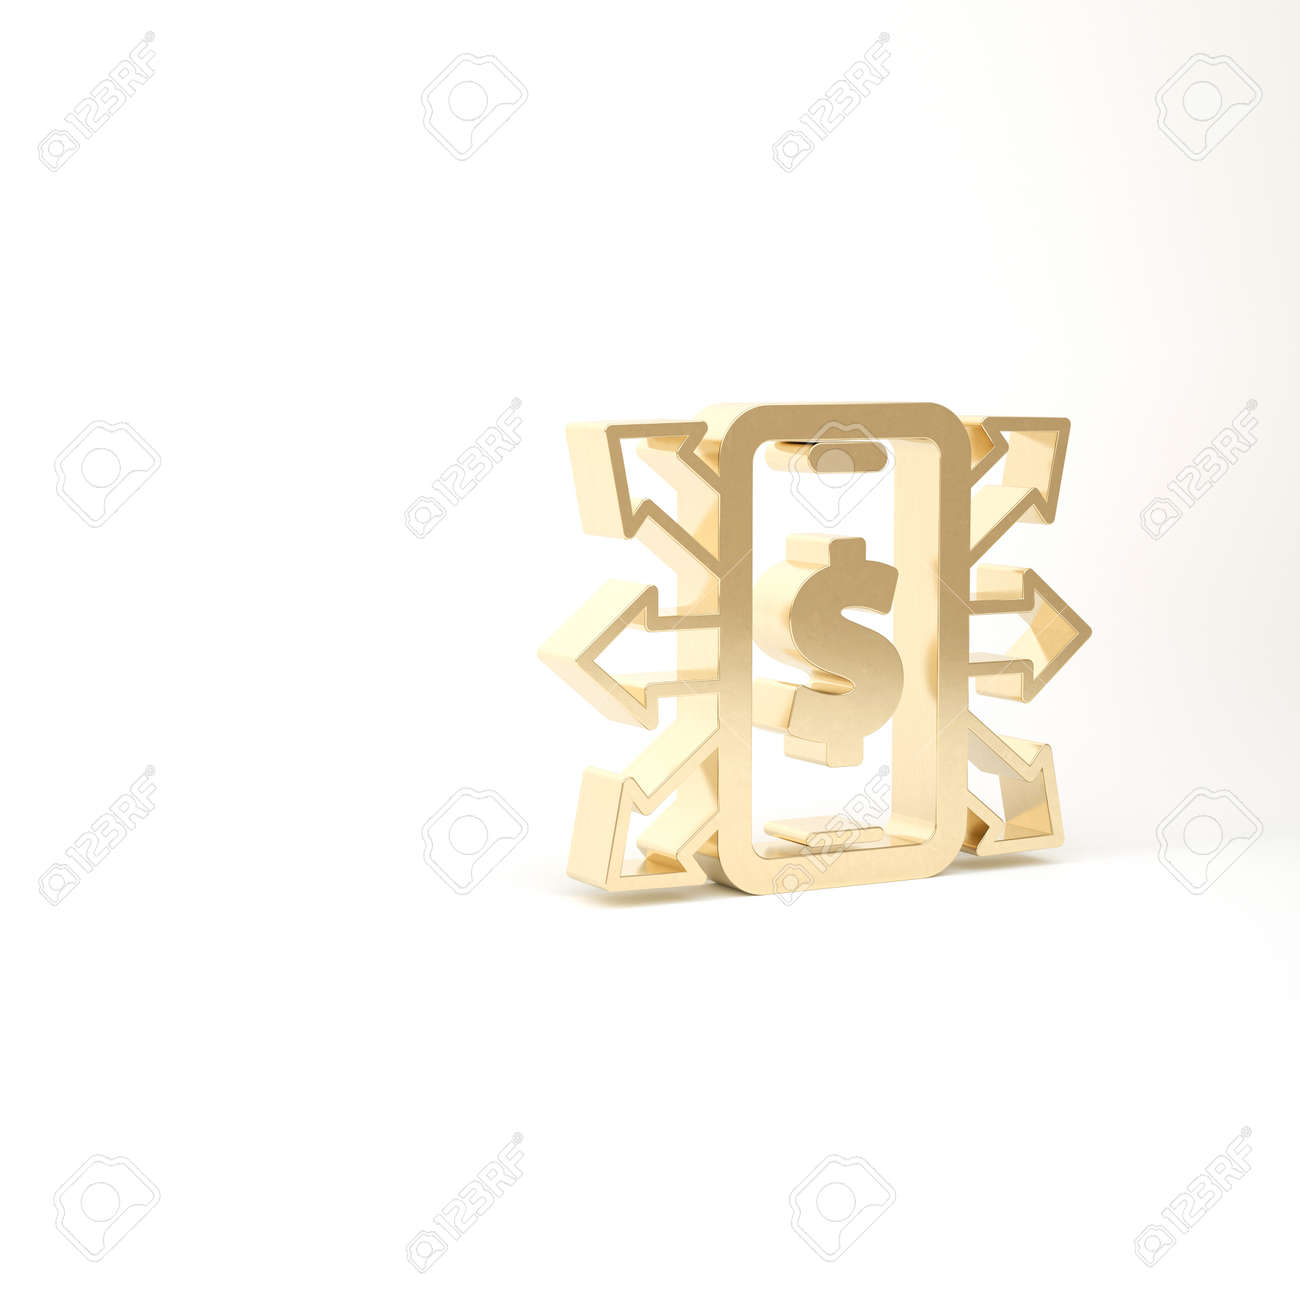 Gold Smartphone with dollar symbol icon isolated on white background. Online shopping concept. Financial mobile phone icon. Online payment. 3d illustration 3D render - 169803357